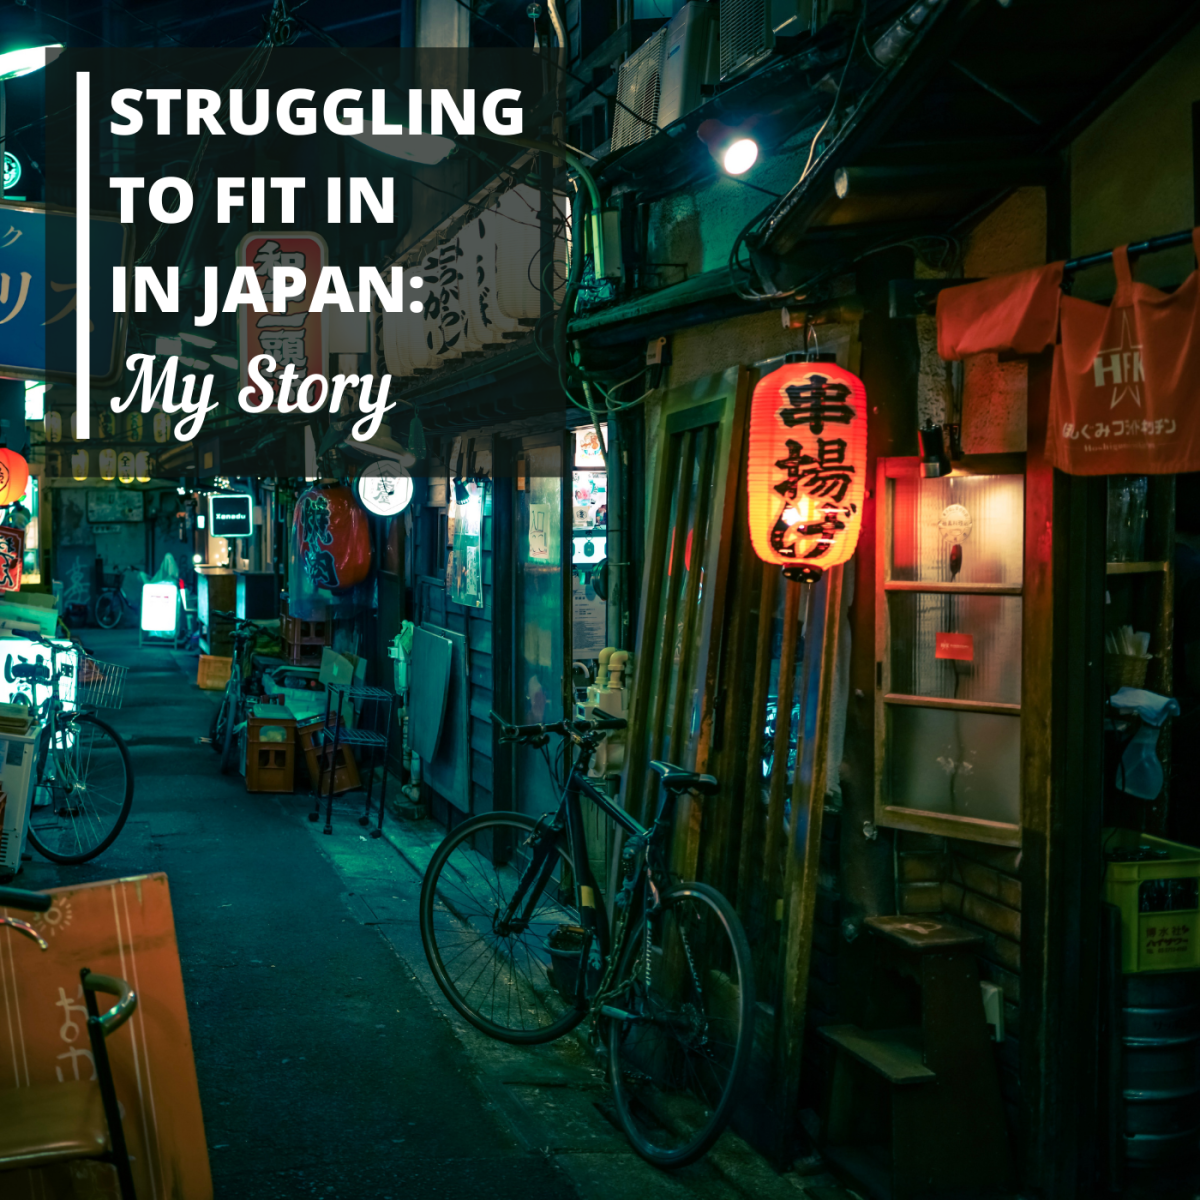 Why I Have Trouble Fitting in in Japan Despite Being Japanese